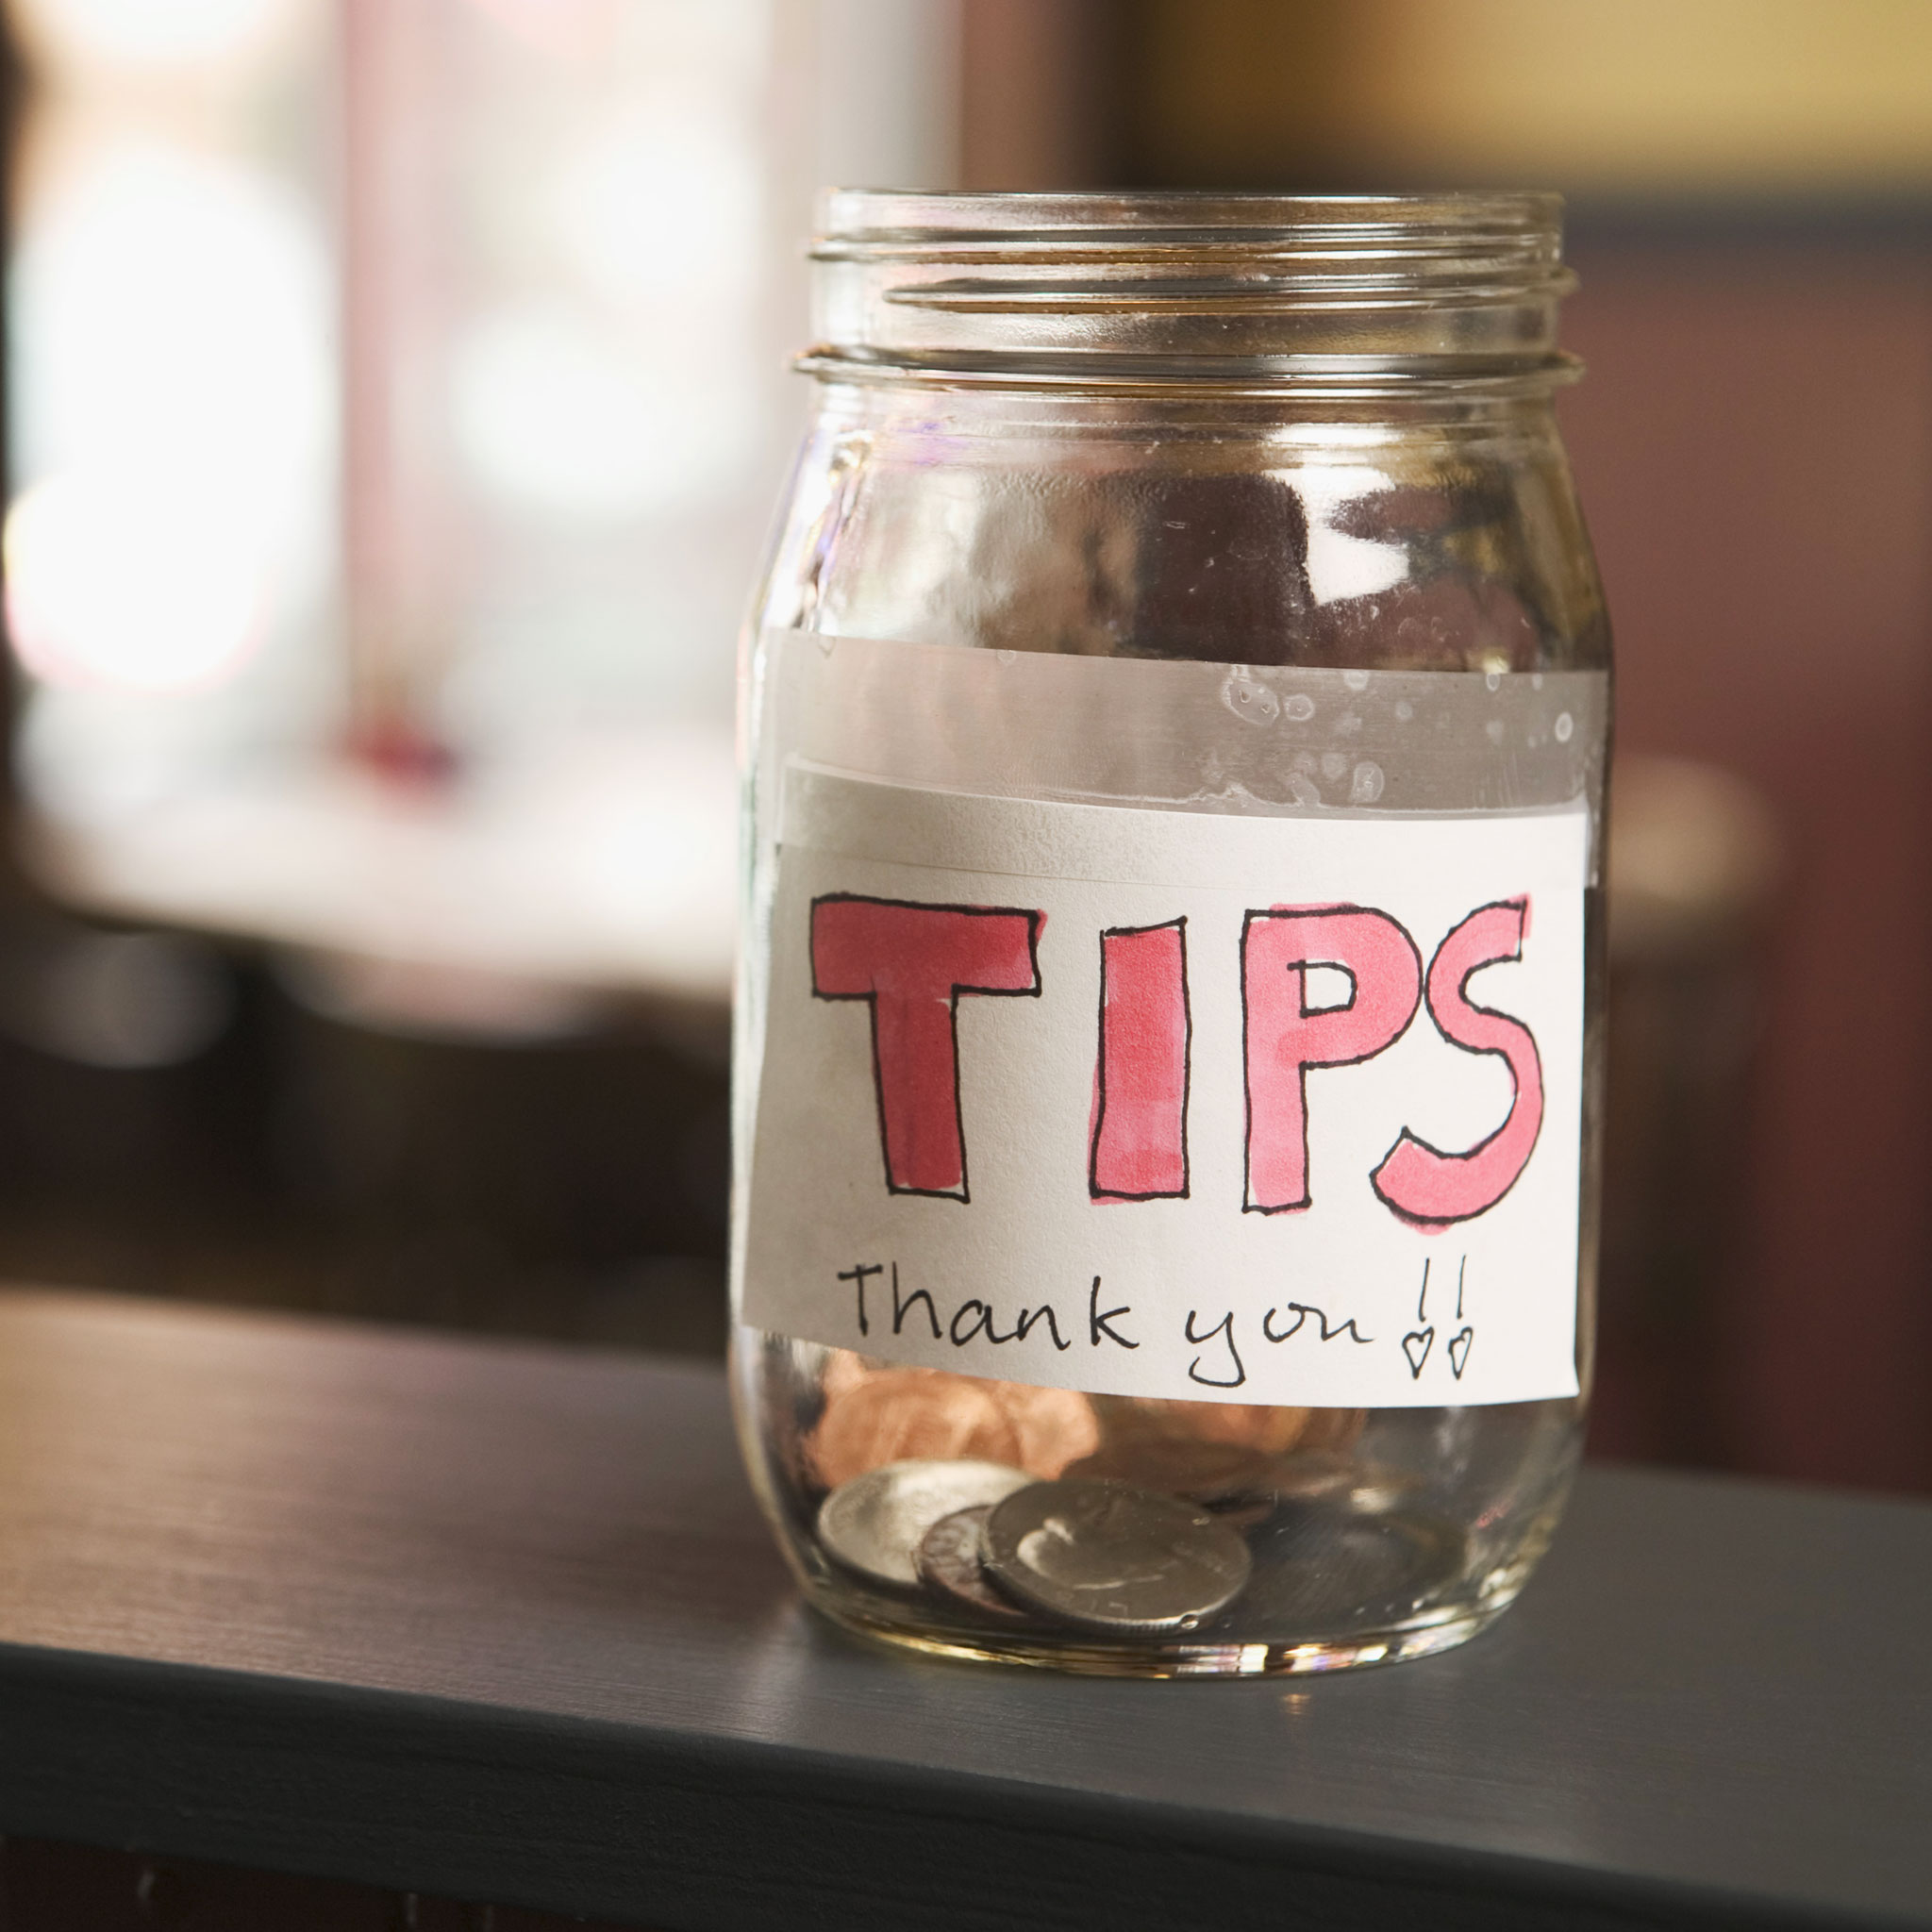 Can 'No Tipping' Policies Also Reduce Sexism and Racism?